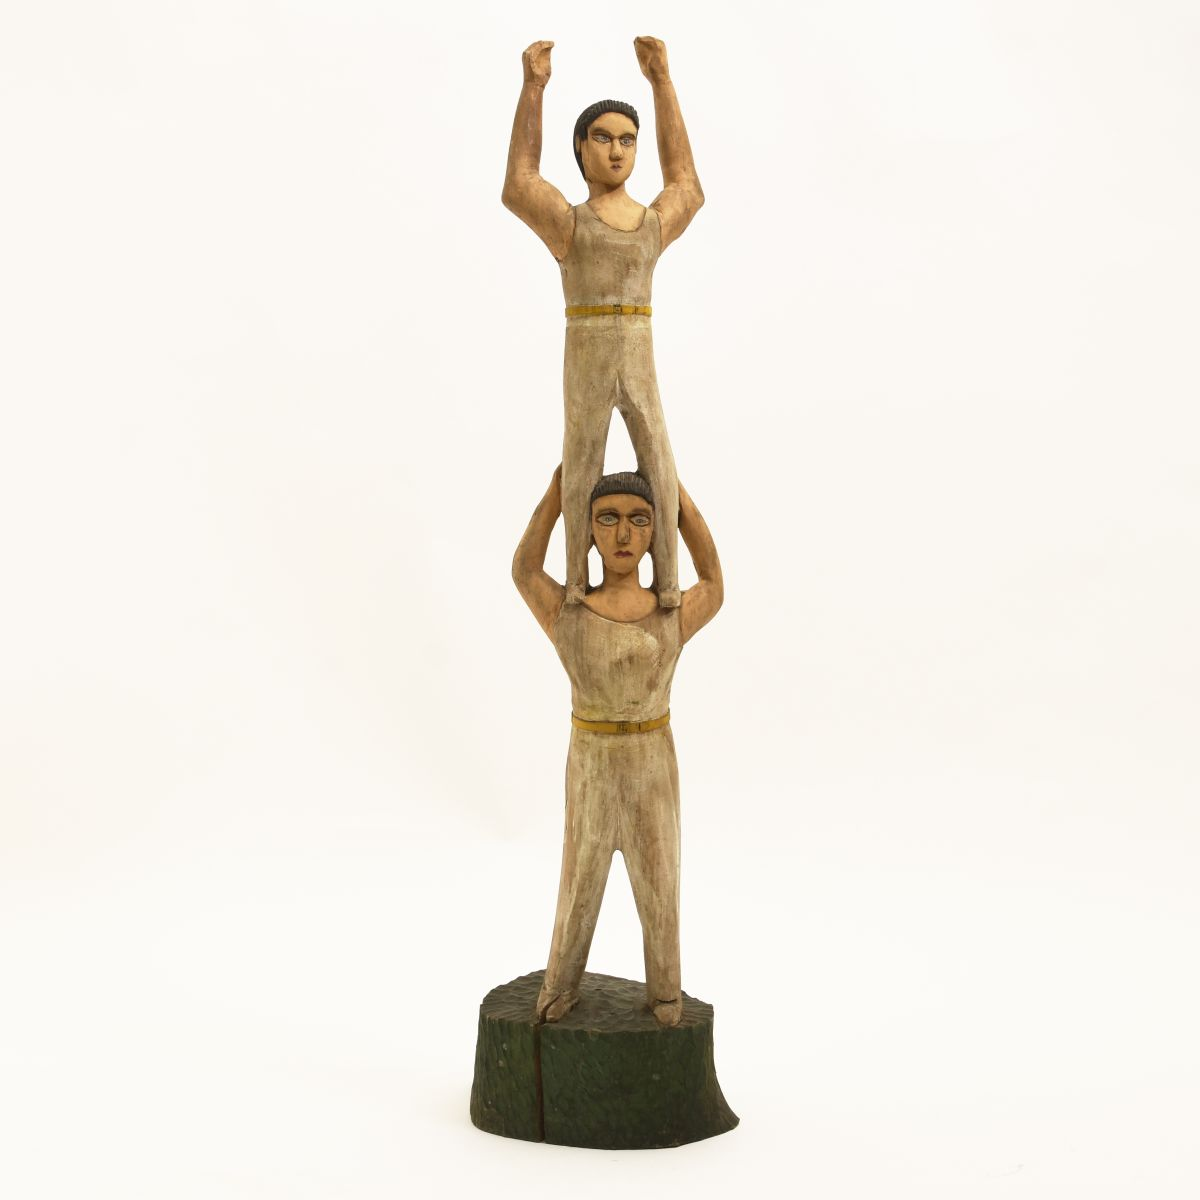 Anonymous-Folky-Wooden-Sculpture-shoulderrides